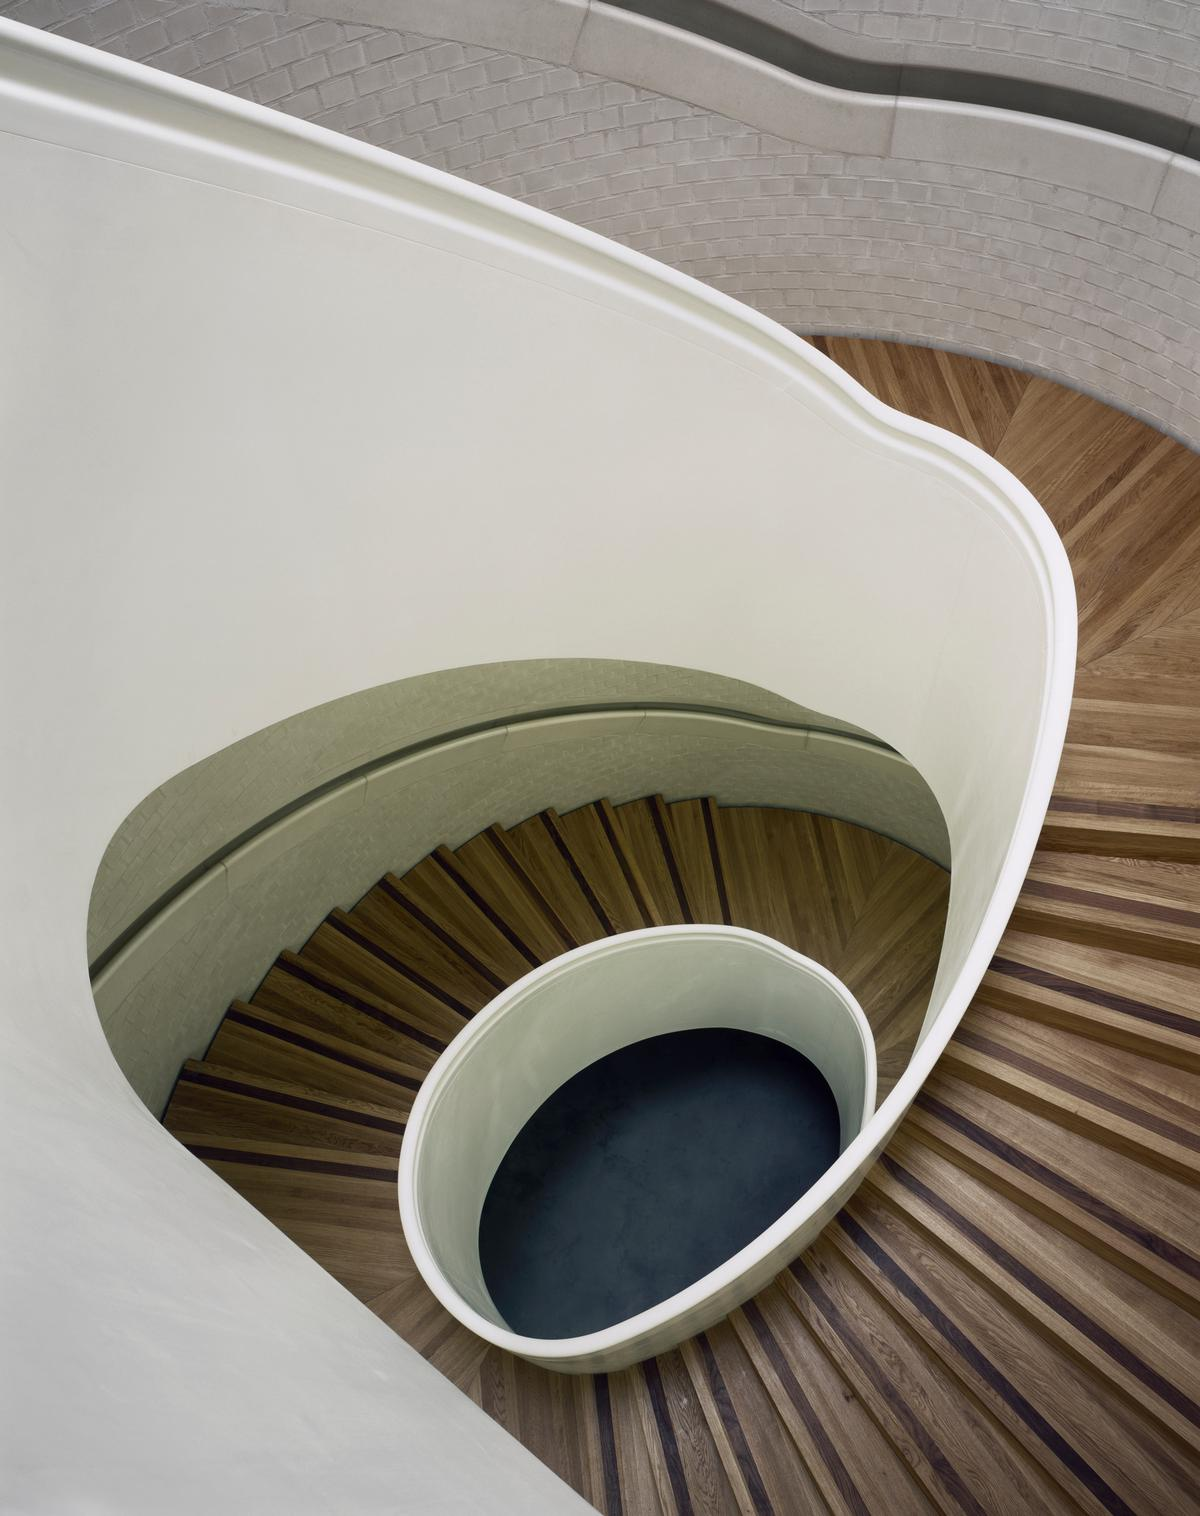 Caruso St John's spiralling staircase is a standout feature / Helene Binet